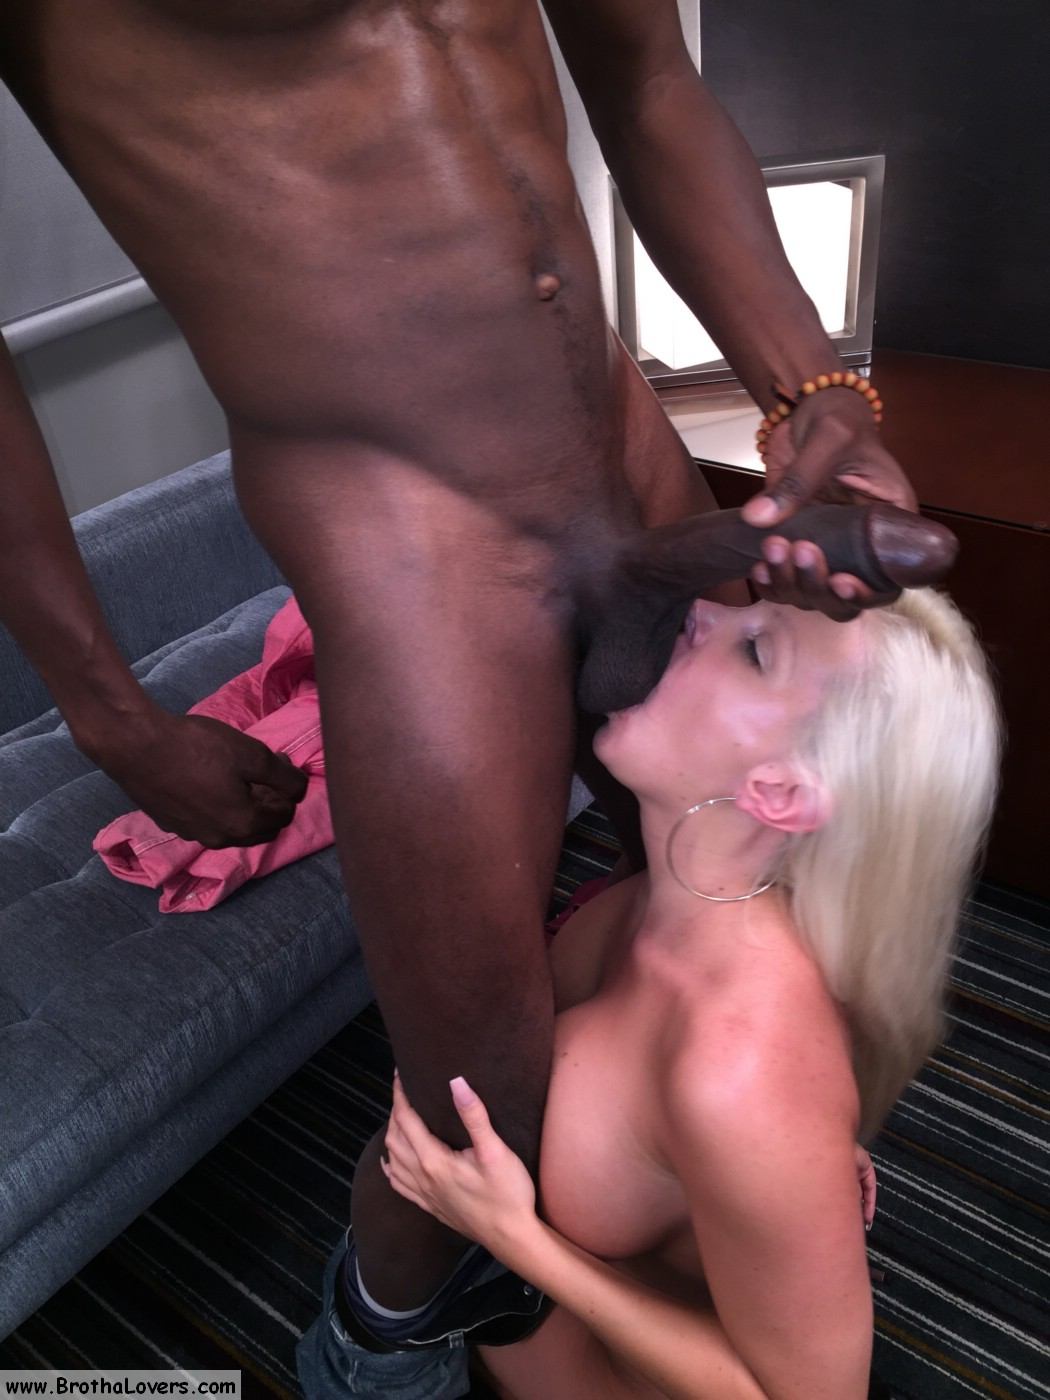 Cheating wife meets black lover in hotels - 1 part 7